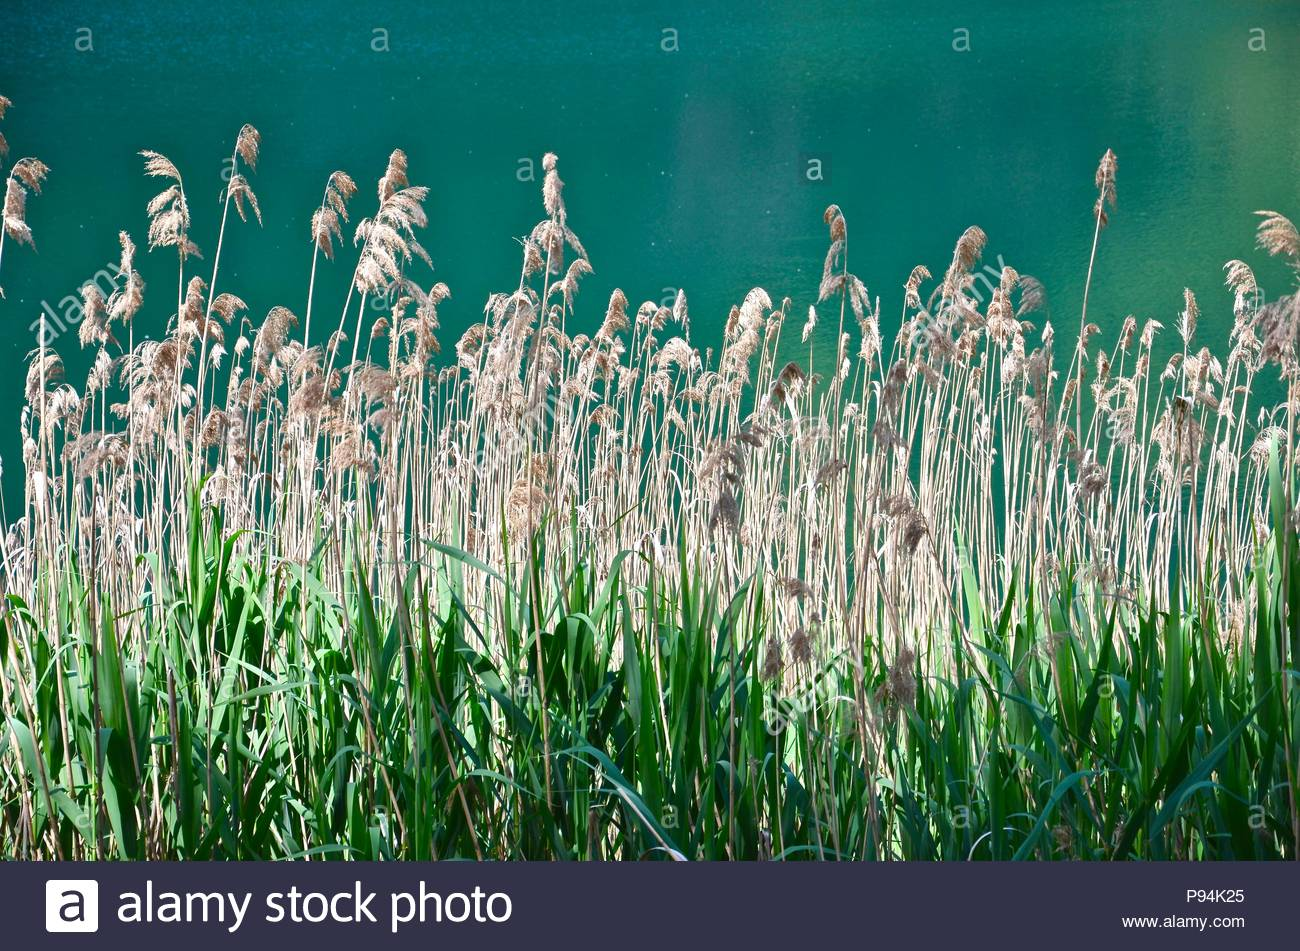 Reed at emerald colored lake Lago d'Iseo in Italy, Lombardy, natural landscape, beautiful, travel, nature - Stock Image